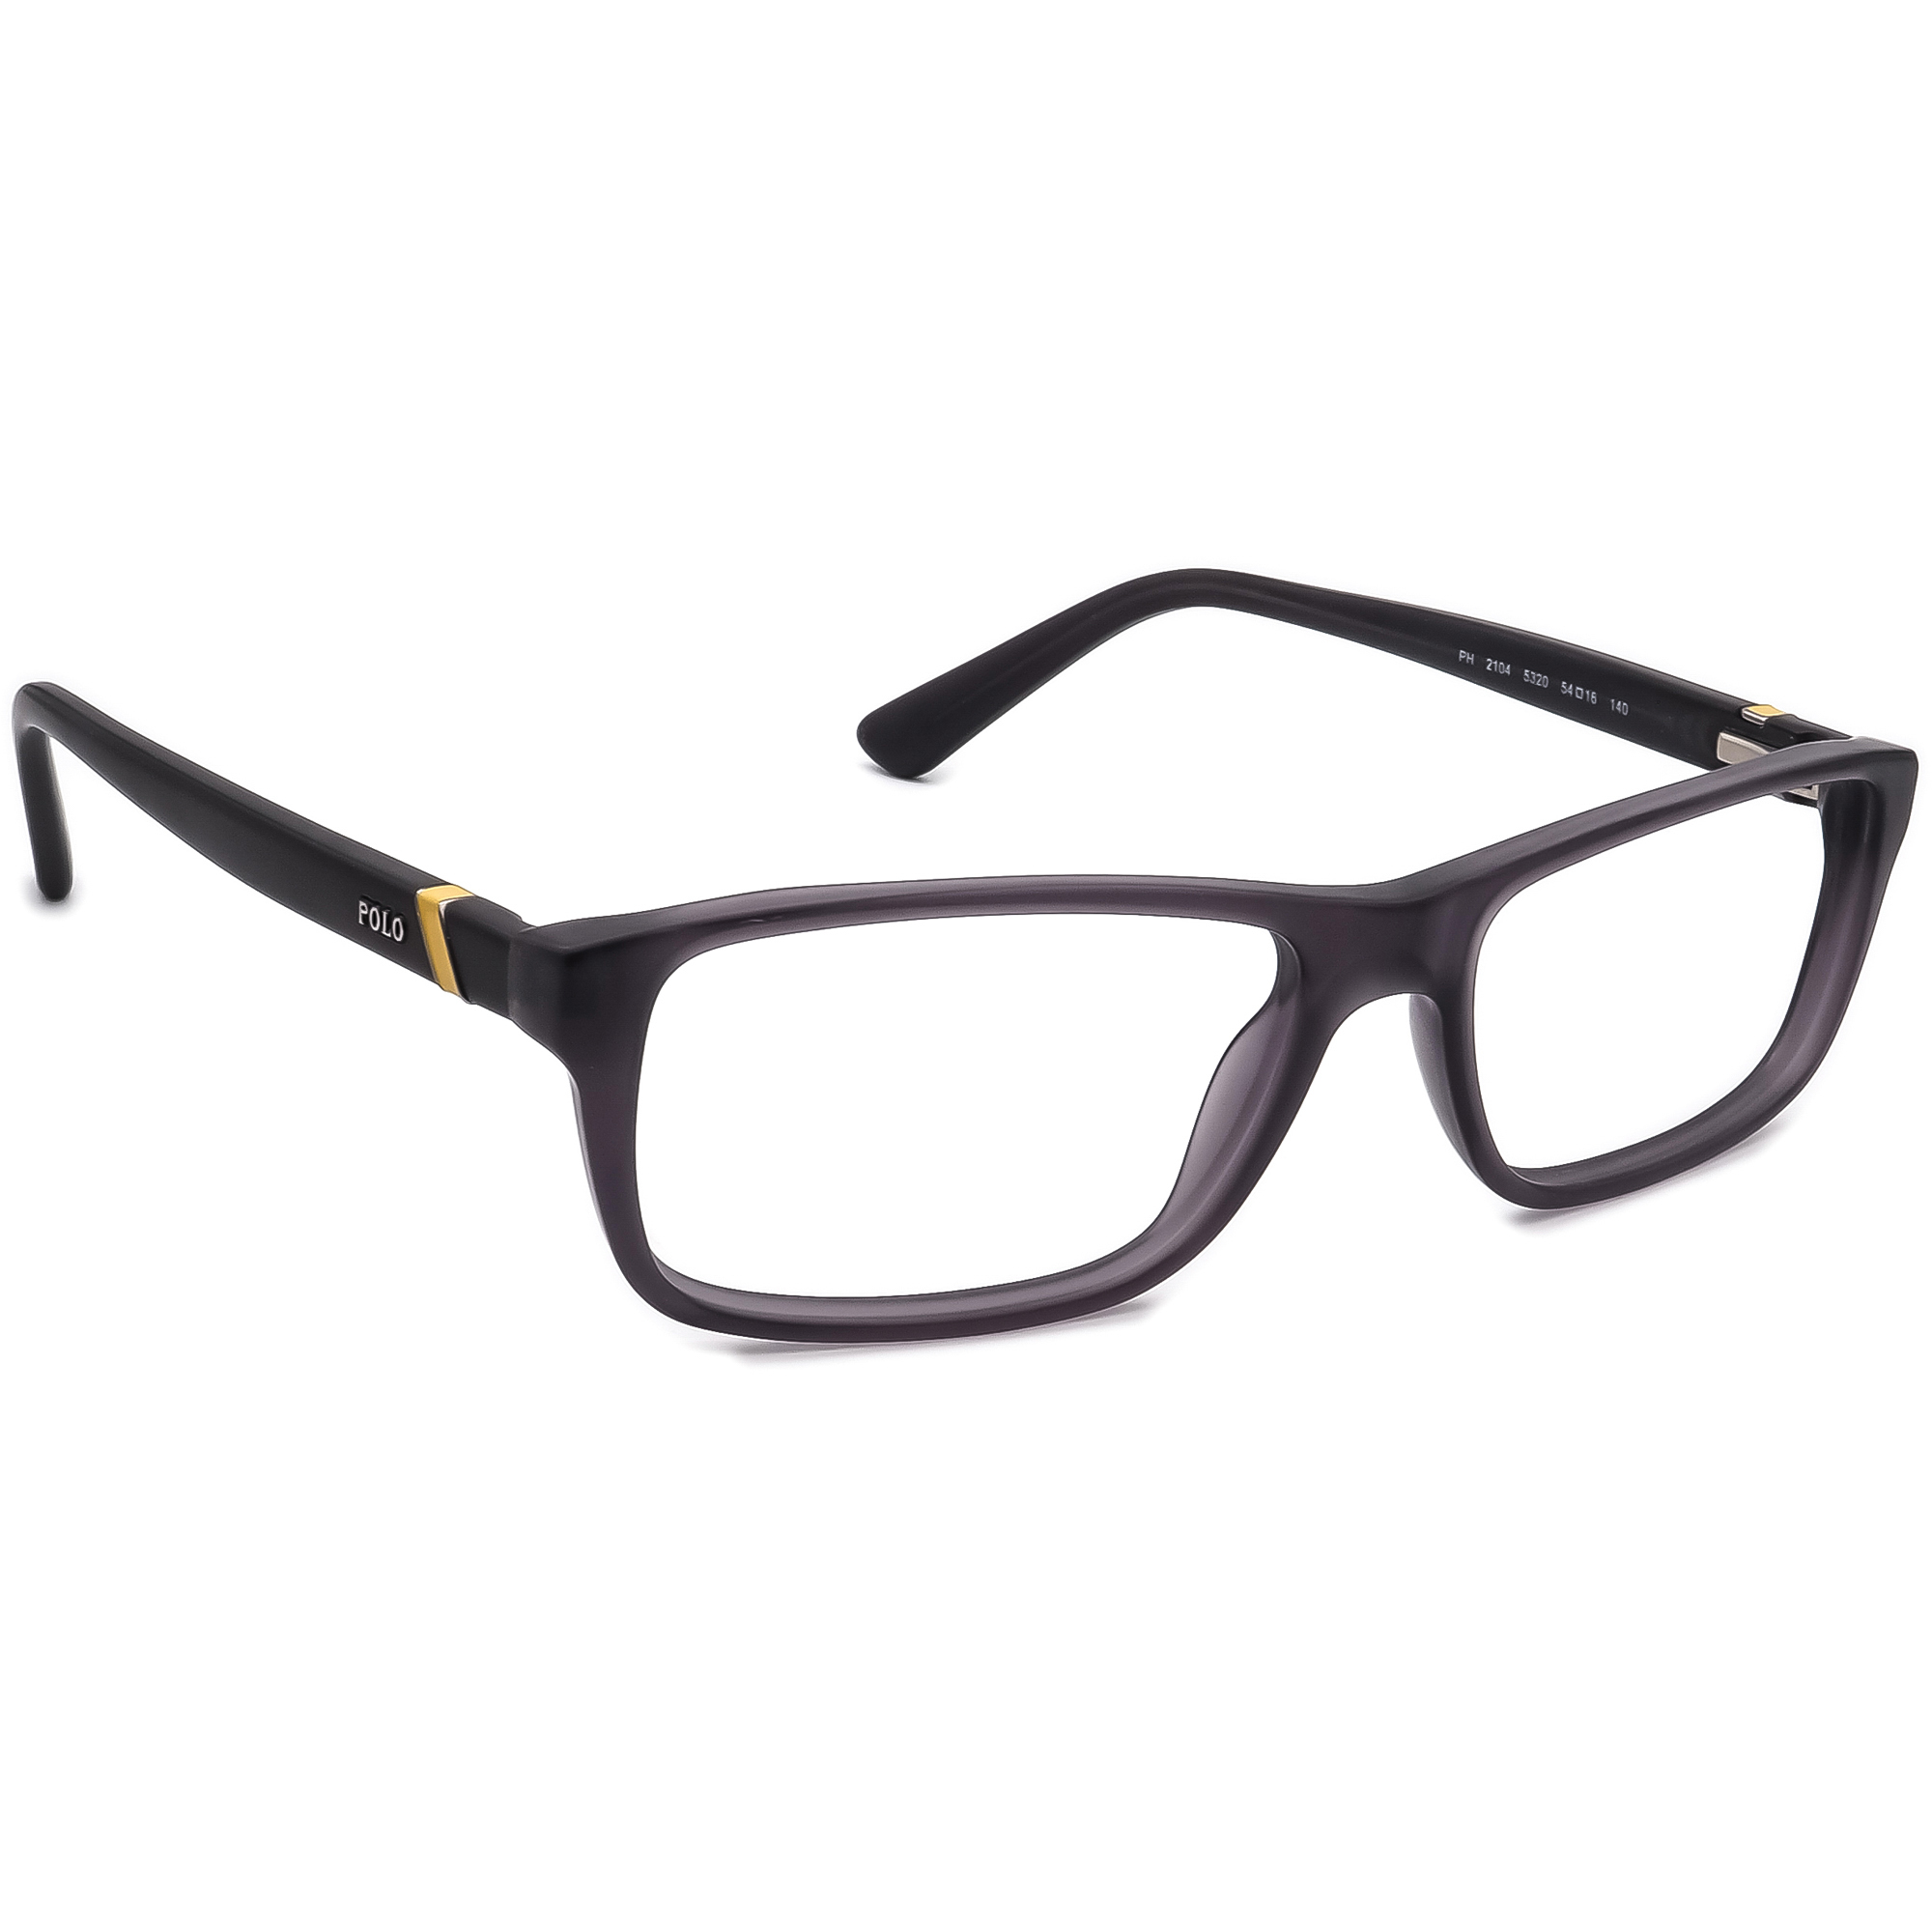 Ralph Lauren Polo PH 2104 5320 Eyeglasses